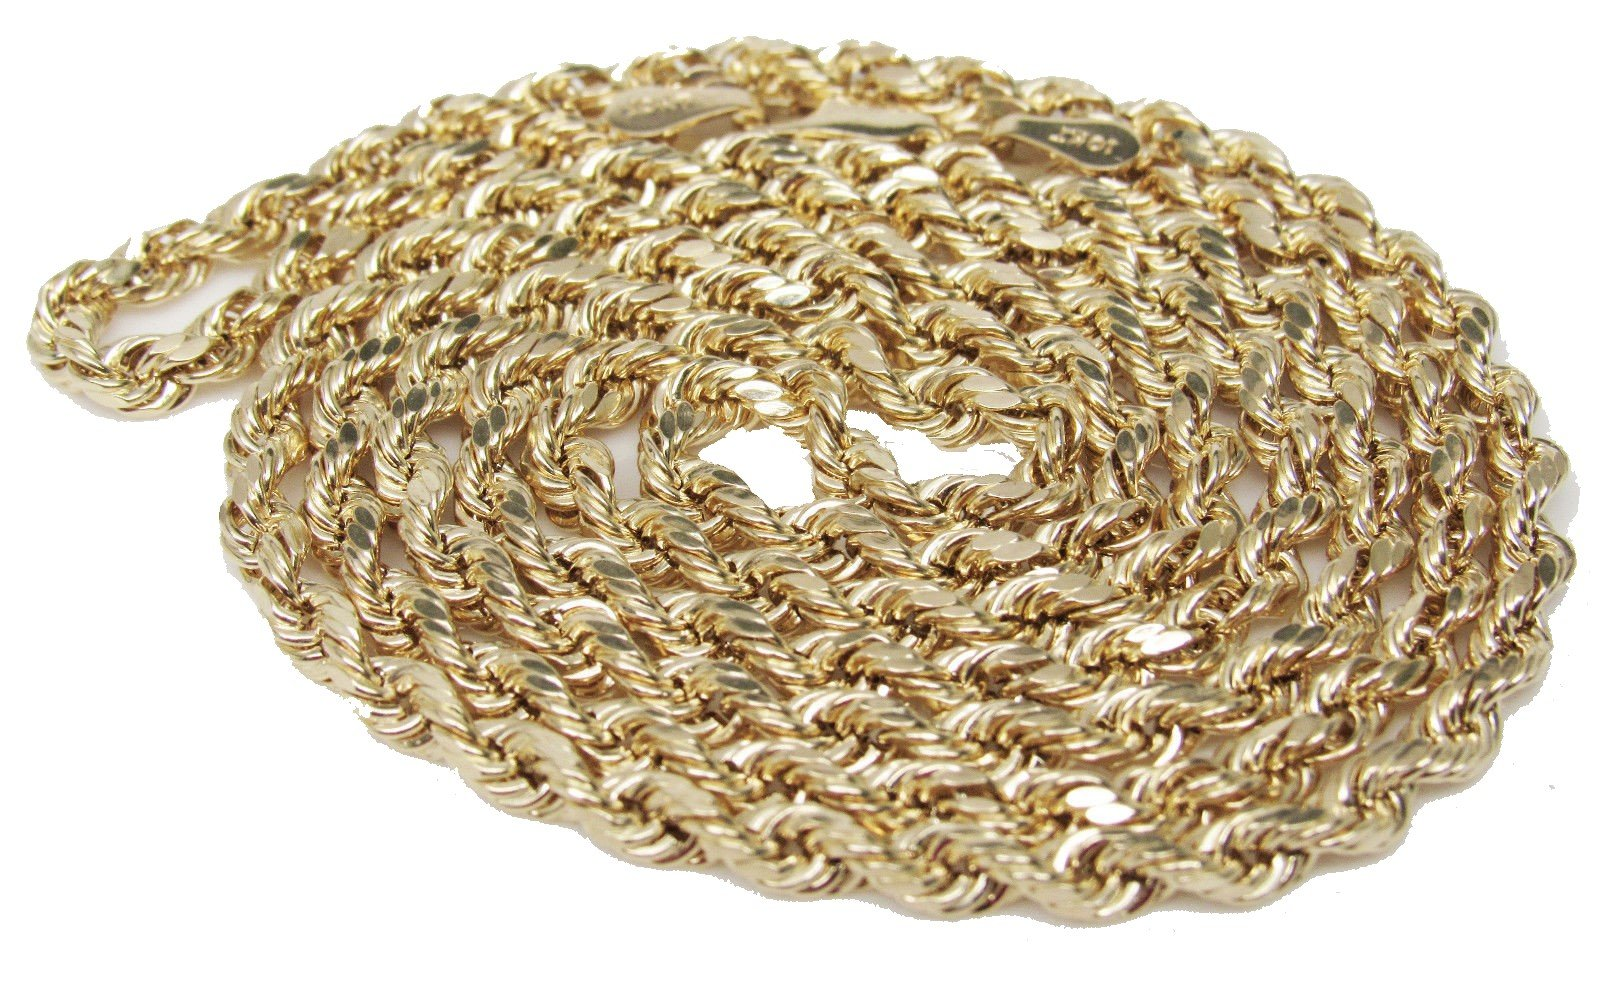 10K Yellow Gold Italian Rope Chain 20'' 2.5mm wide Hollow 3.2 Grams